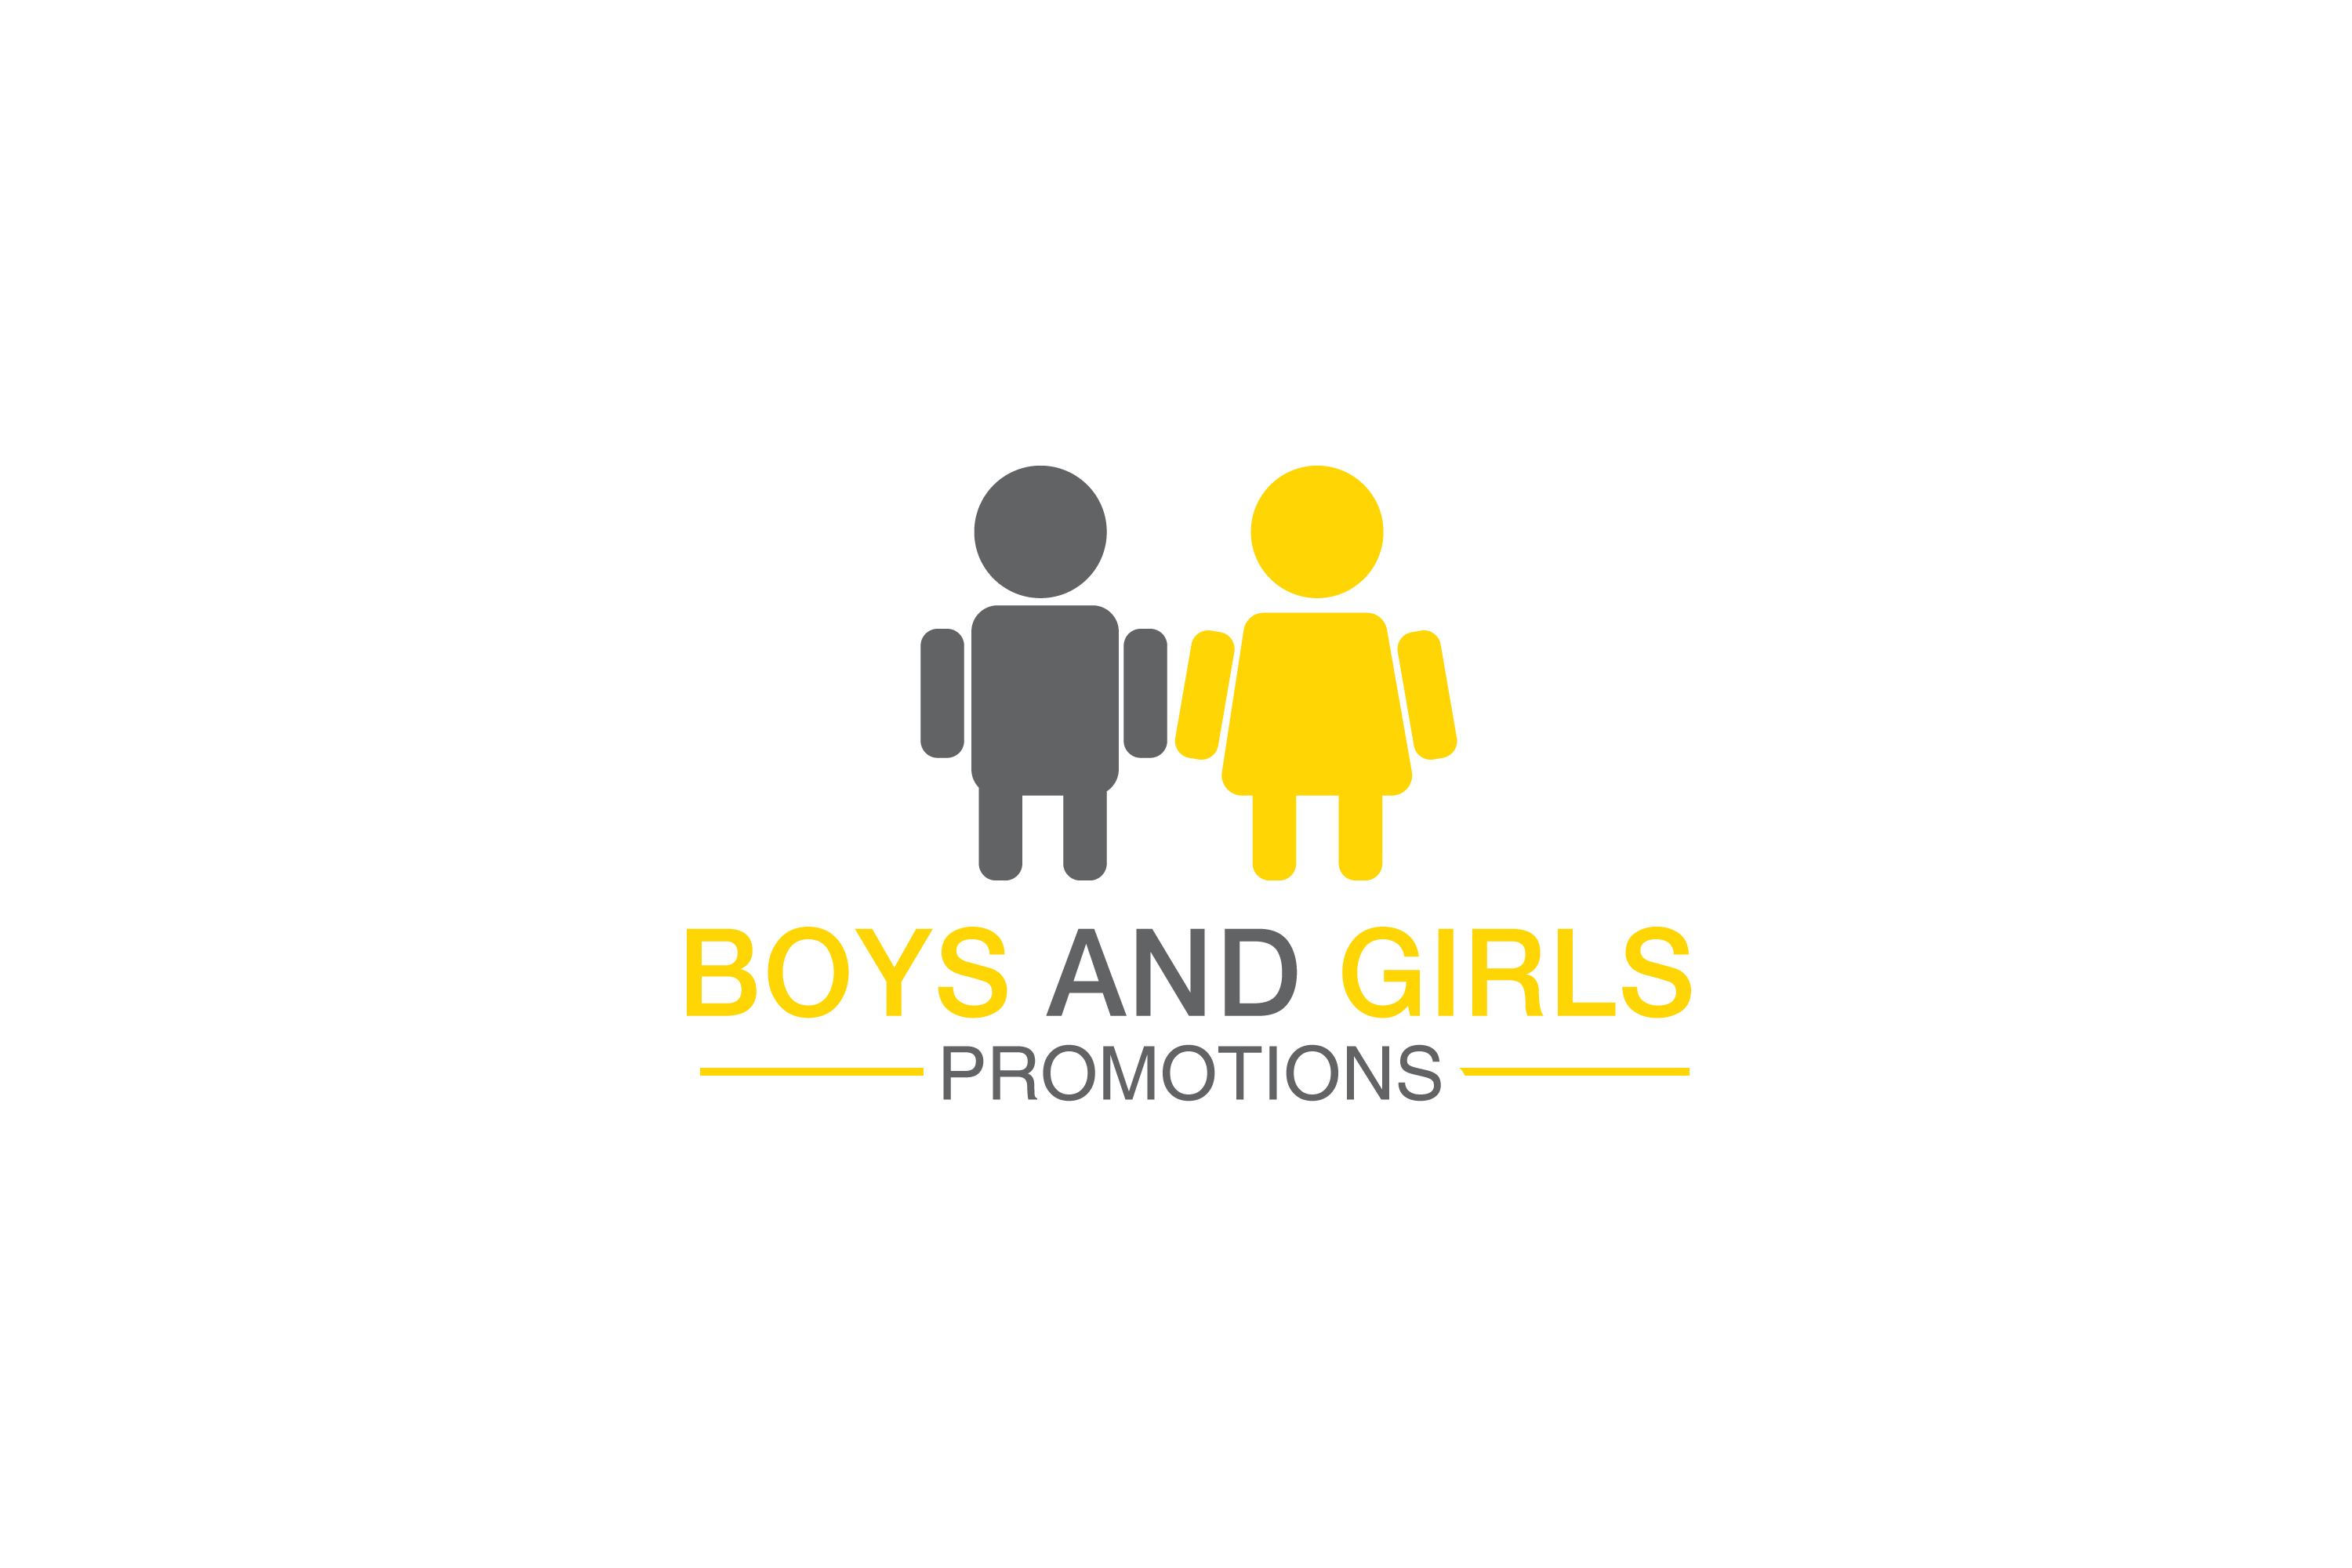 An image of the boys and girls promotions logo a second version